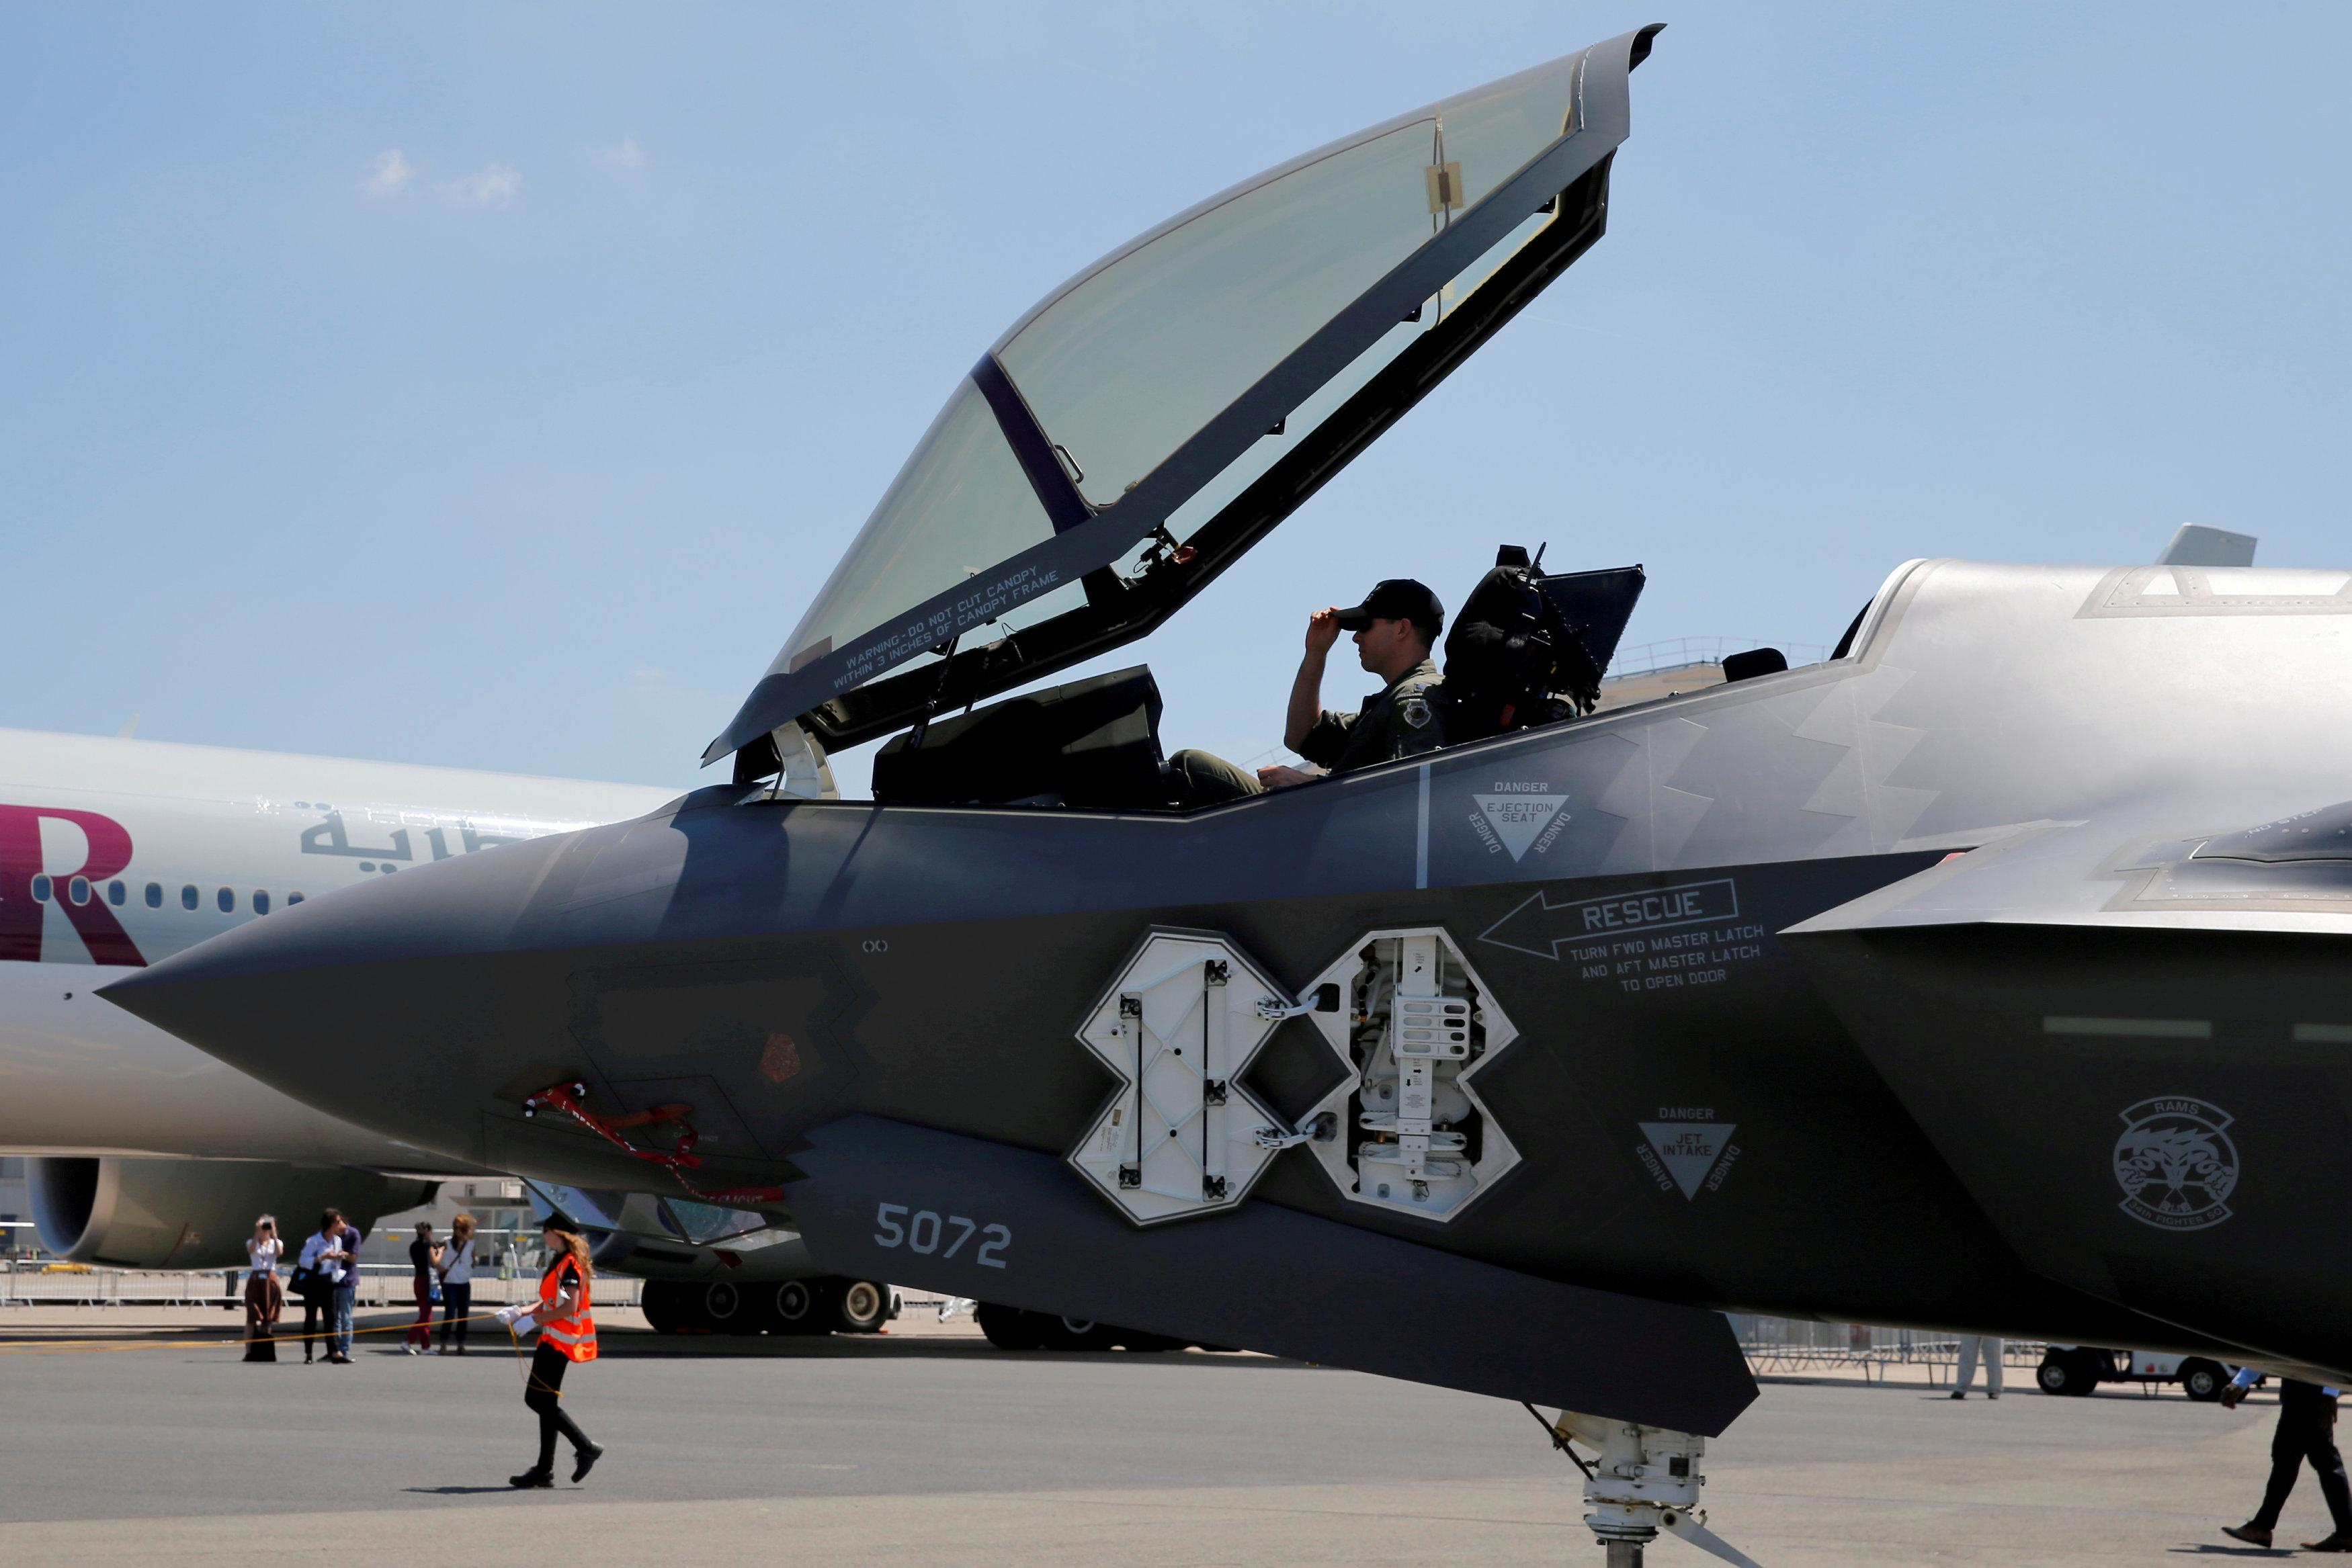 FILE PHOTO: A U.S. soldier adjusts his cap in the cockpit as a Lockheed Martin F-35 Lightning II aircraft is moved on the eve of the 52nd Paris Air Show at Le Bourget Airport near Paris, France, June 18, 2017. REUTERS/Pascal Rossignol/File Photo